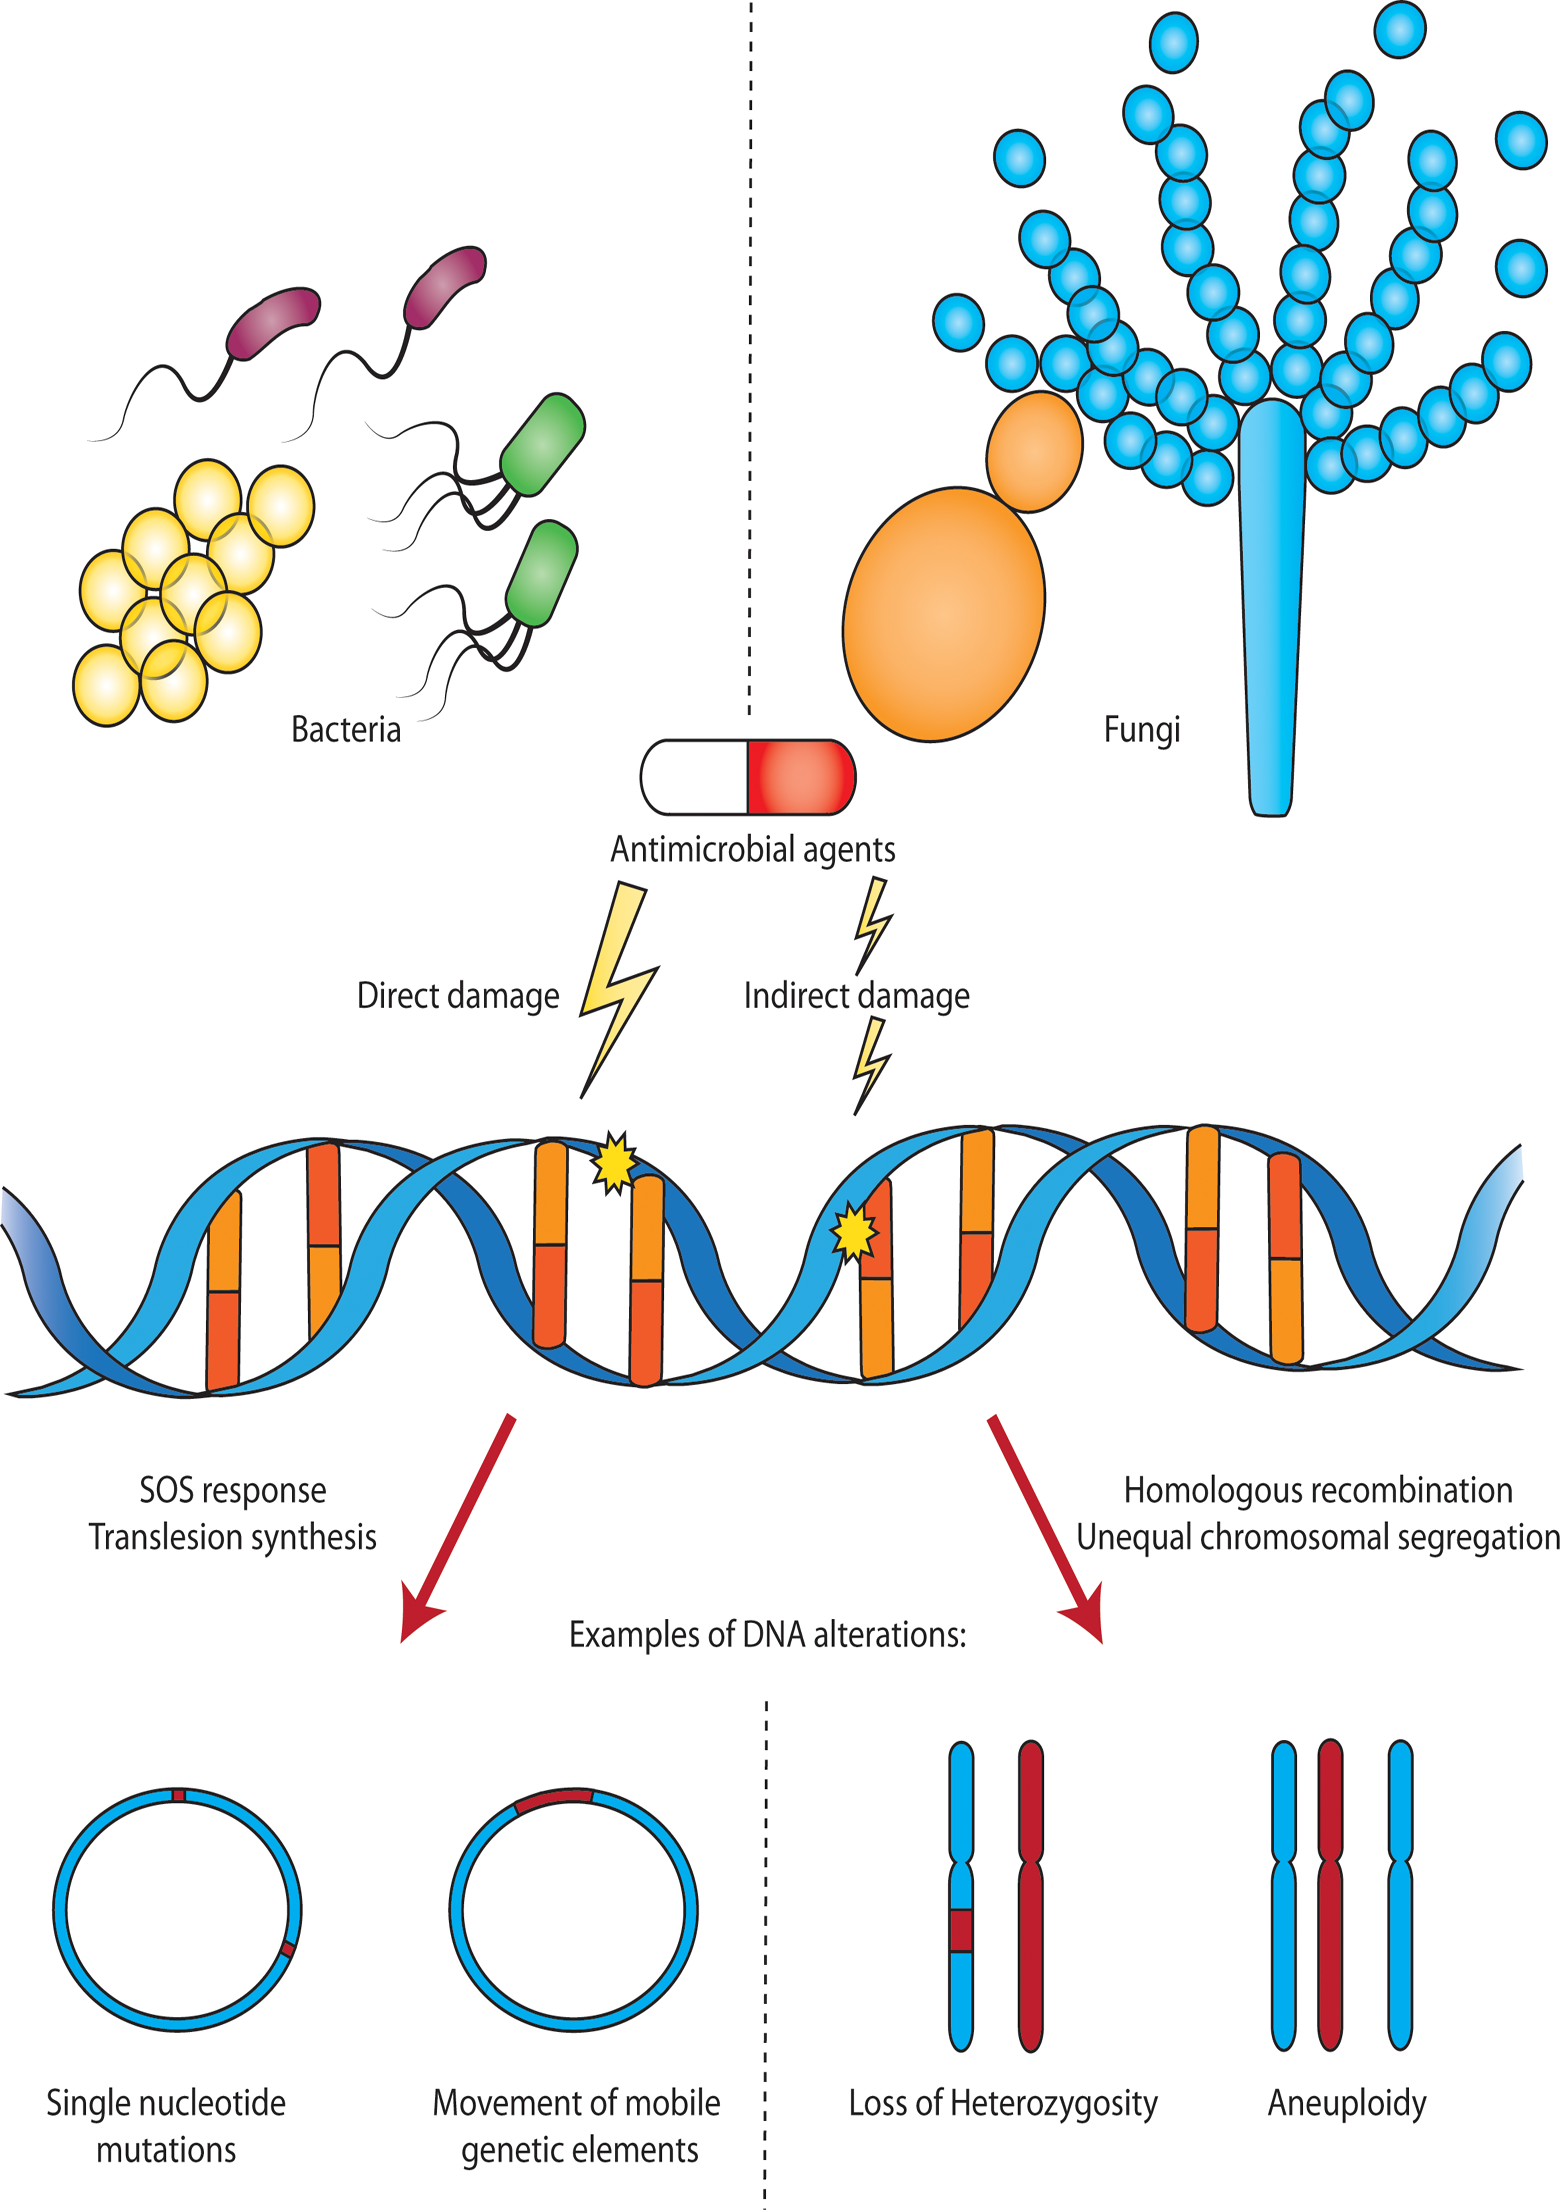 Antimicrobial-induced DNA damage in bacterial and fungal pathogens.